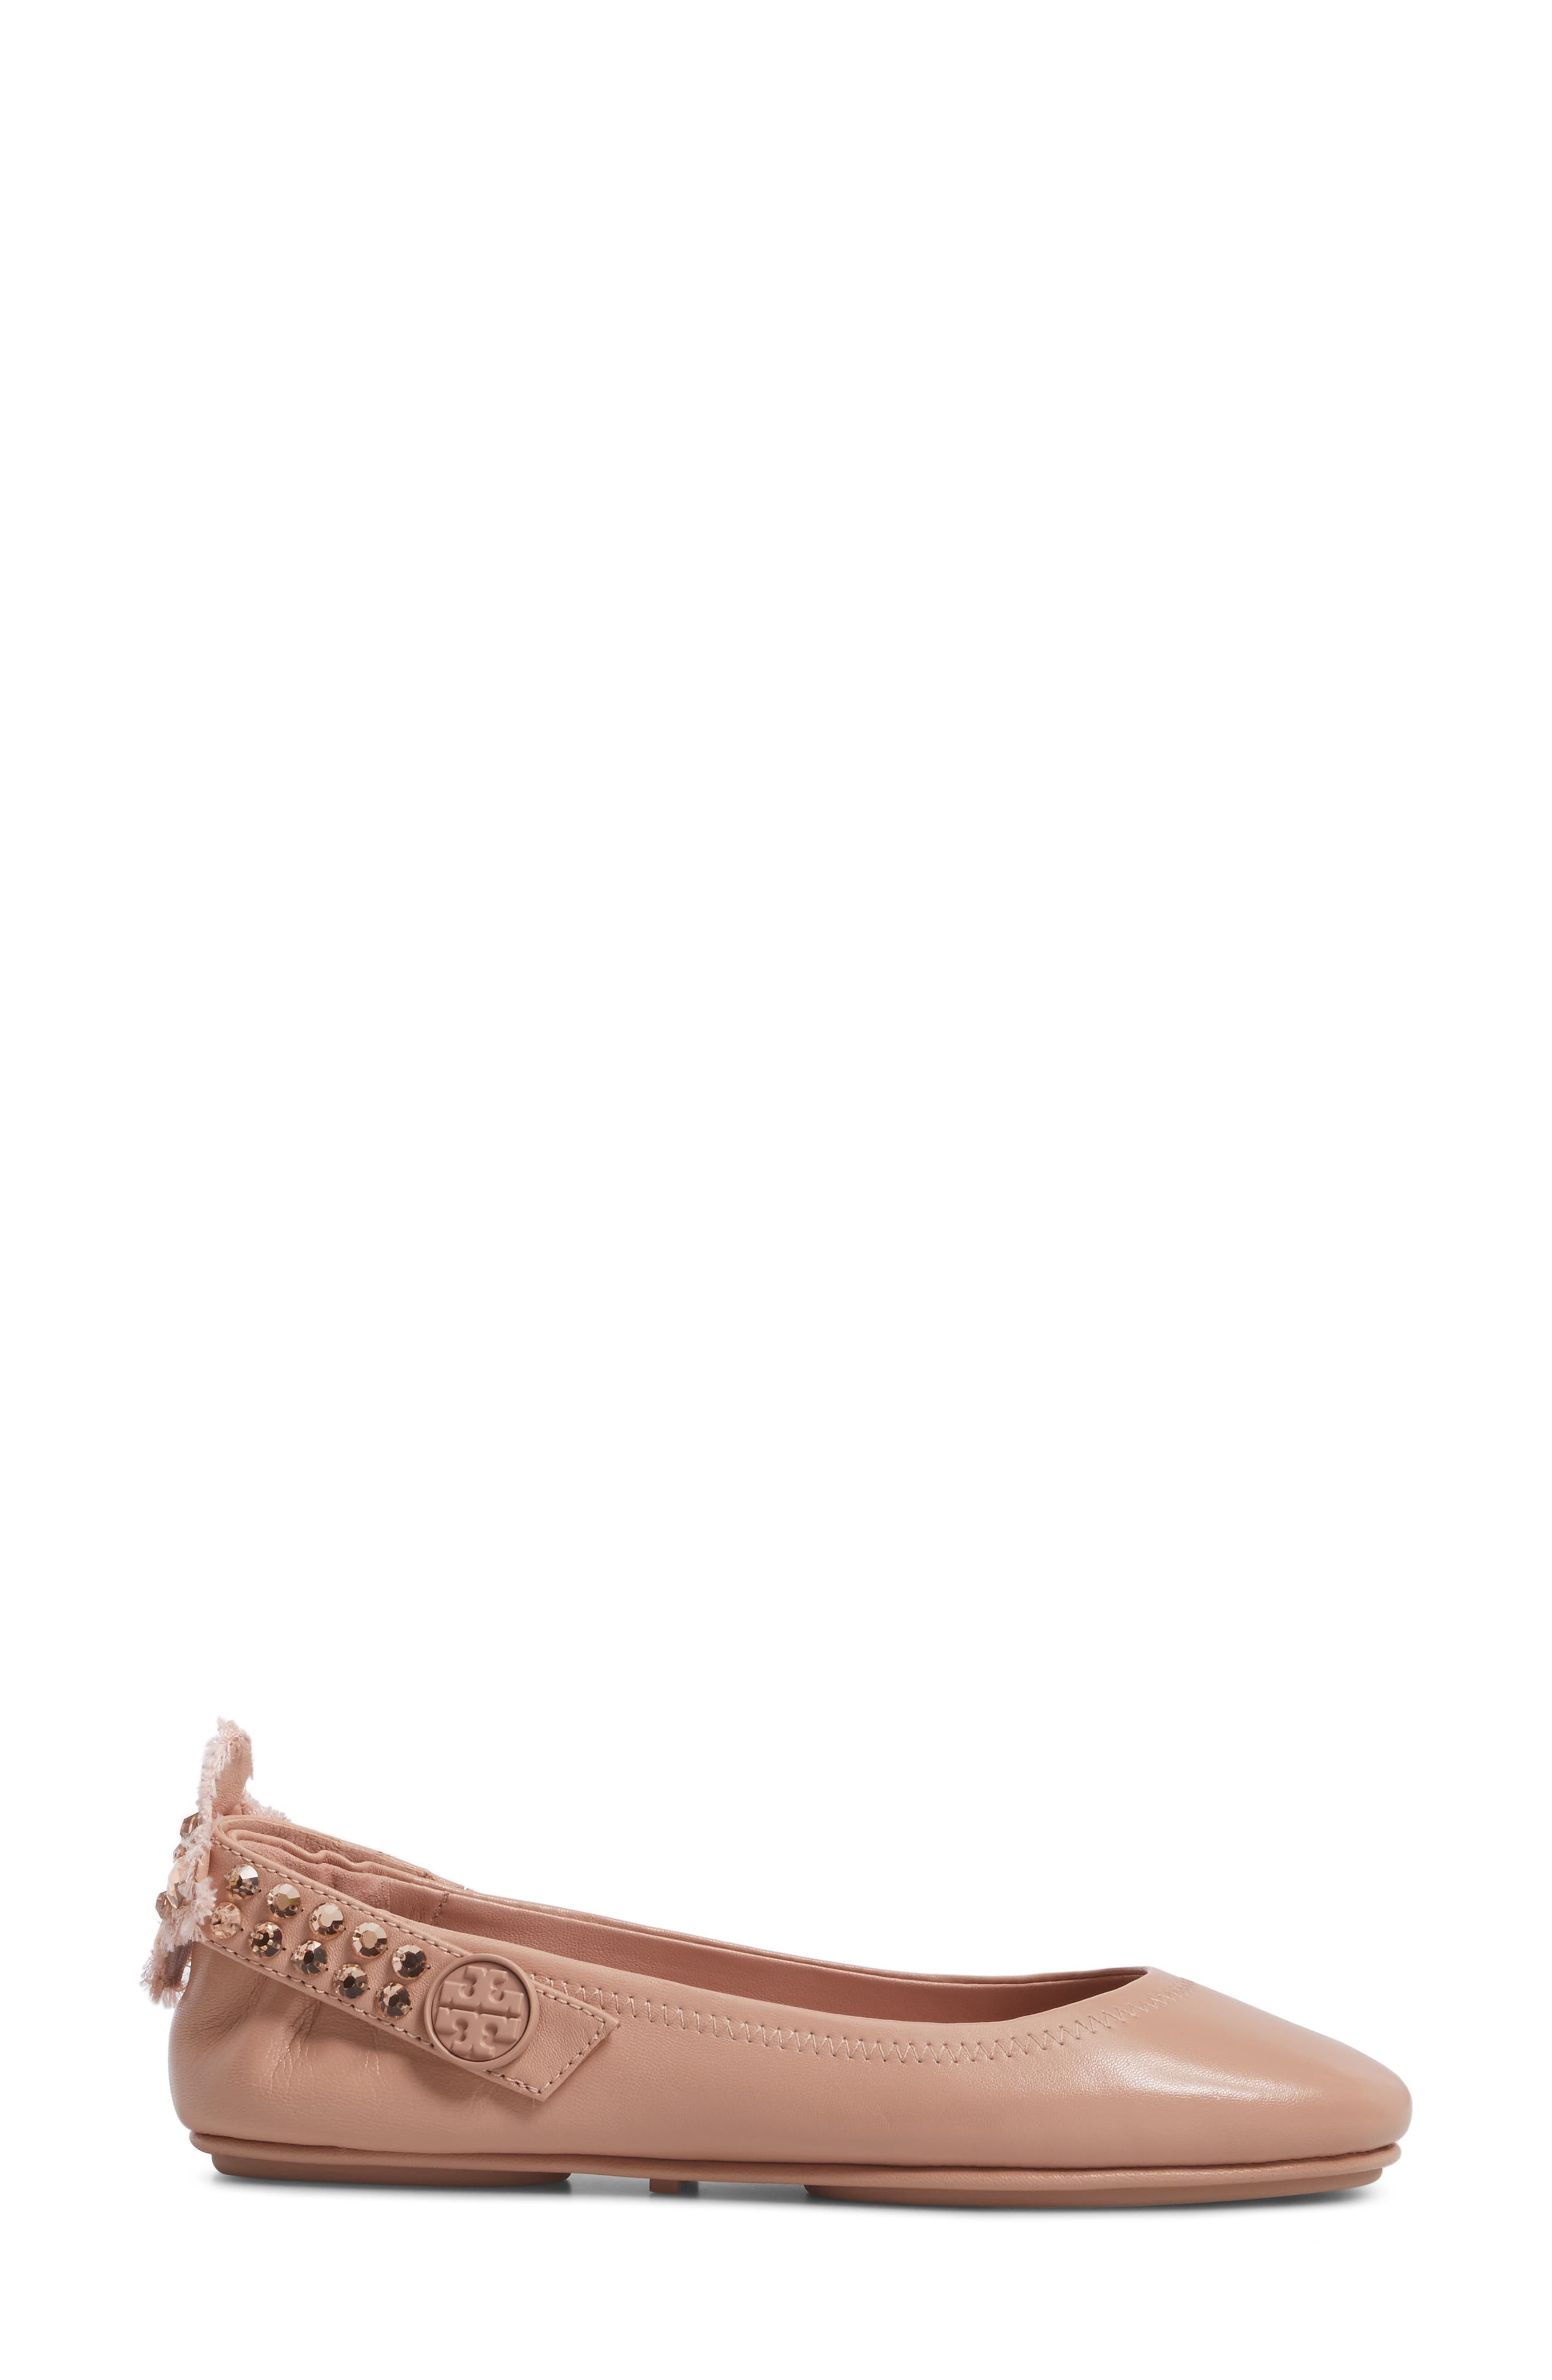 Minnie Embellished Convertible Strap Ballet Flat,                             Alternate thumbnail 6, color,